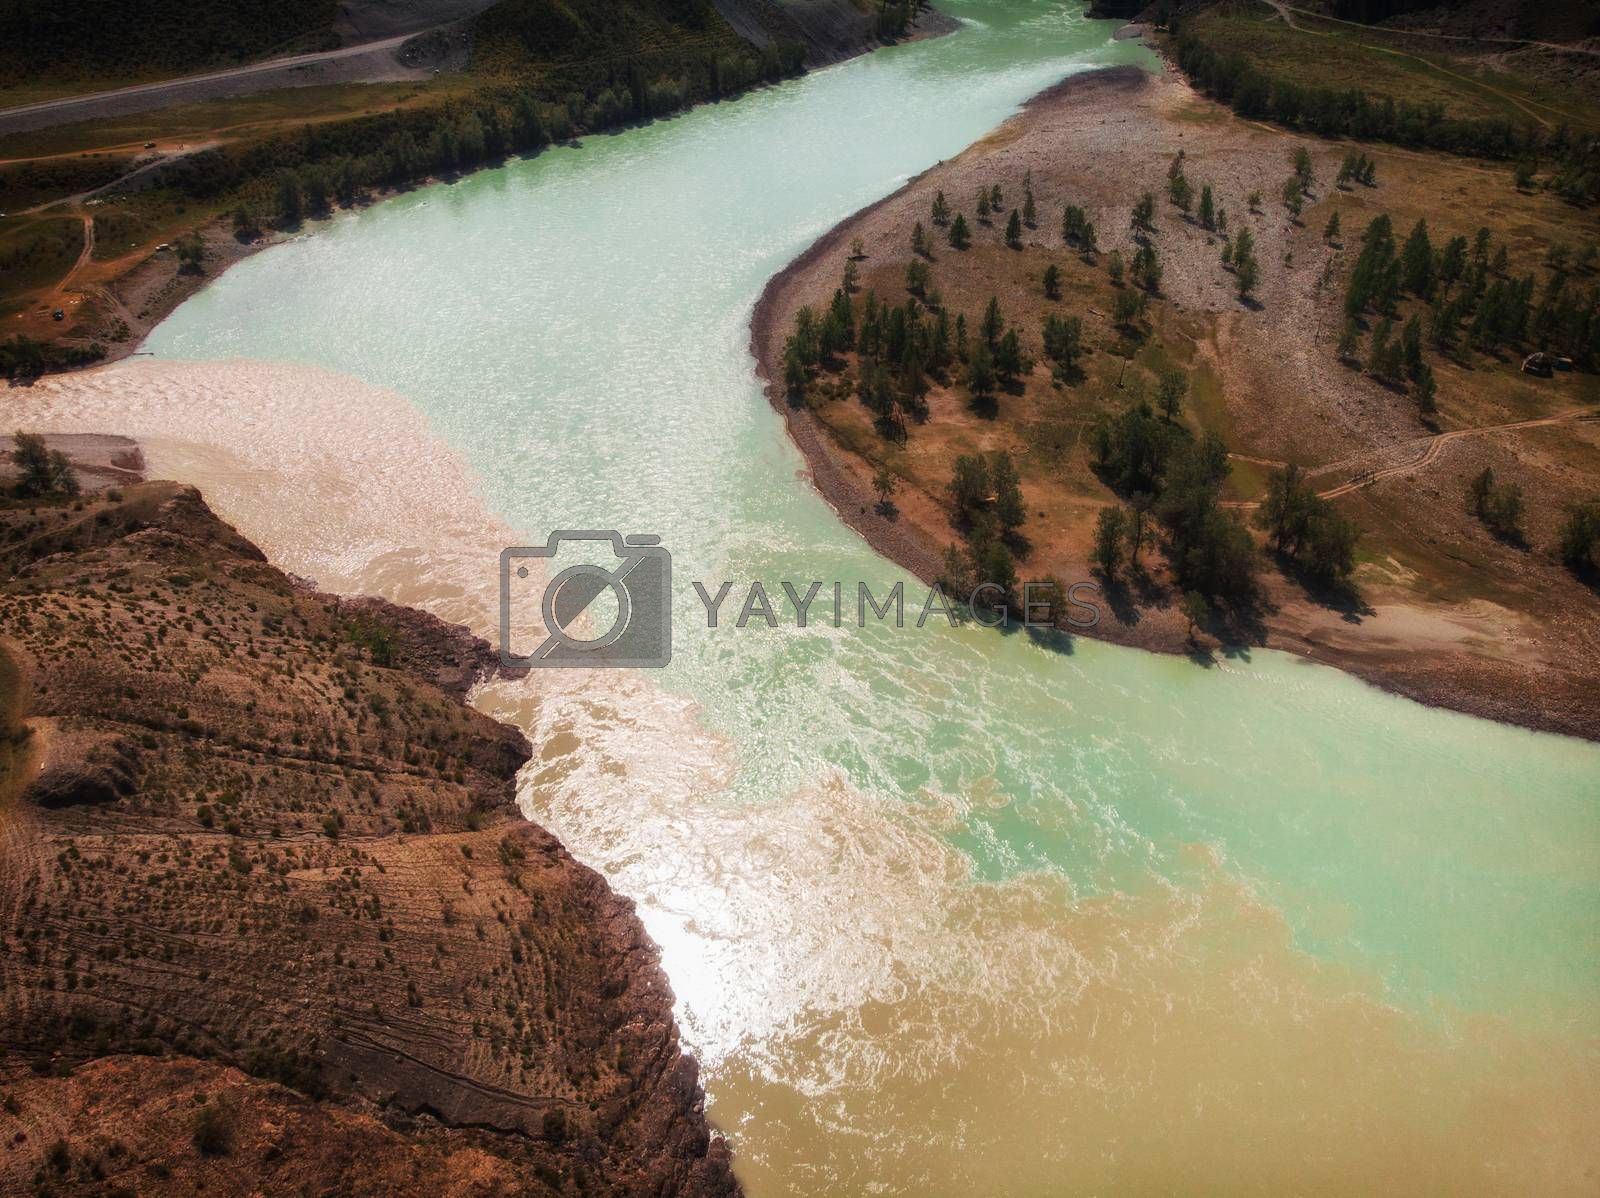 The confluence of two rivers, Katun and Chuya, the famous tourist spot in the Altai mountains, Siberia, Russia, aerial shot.